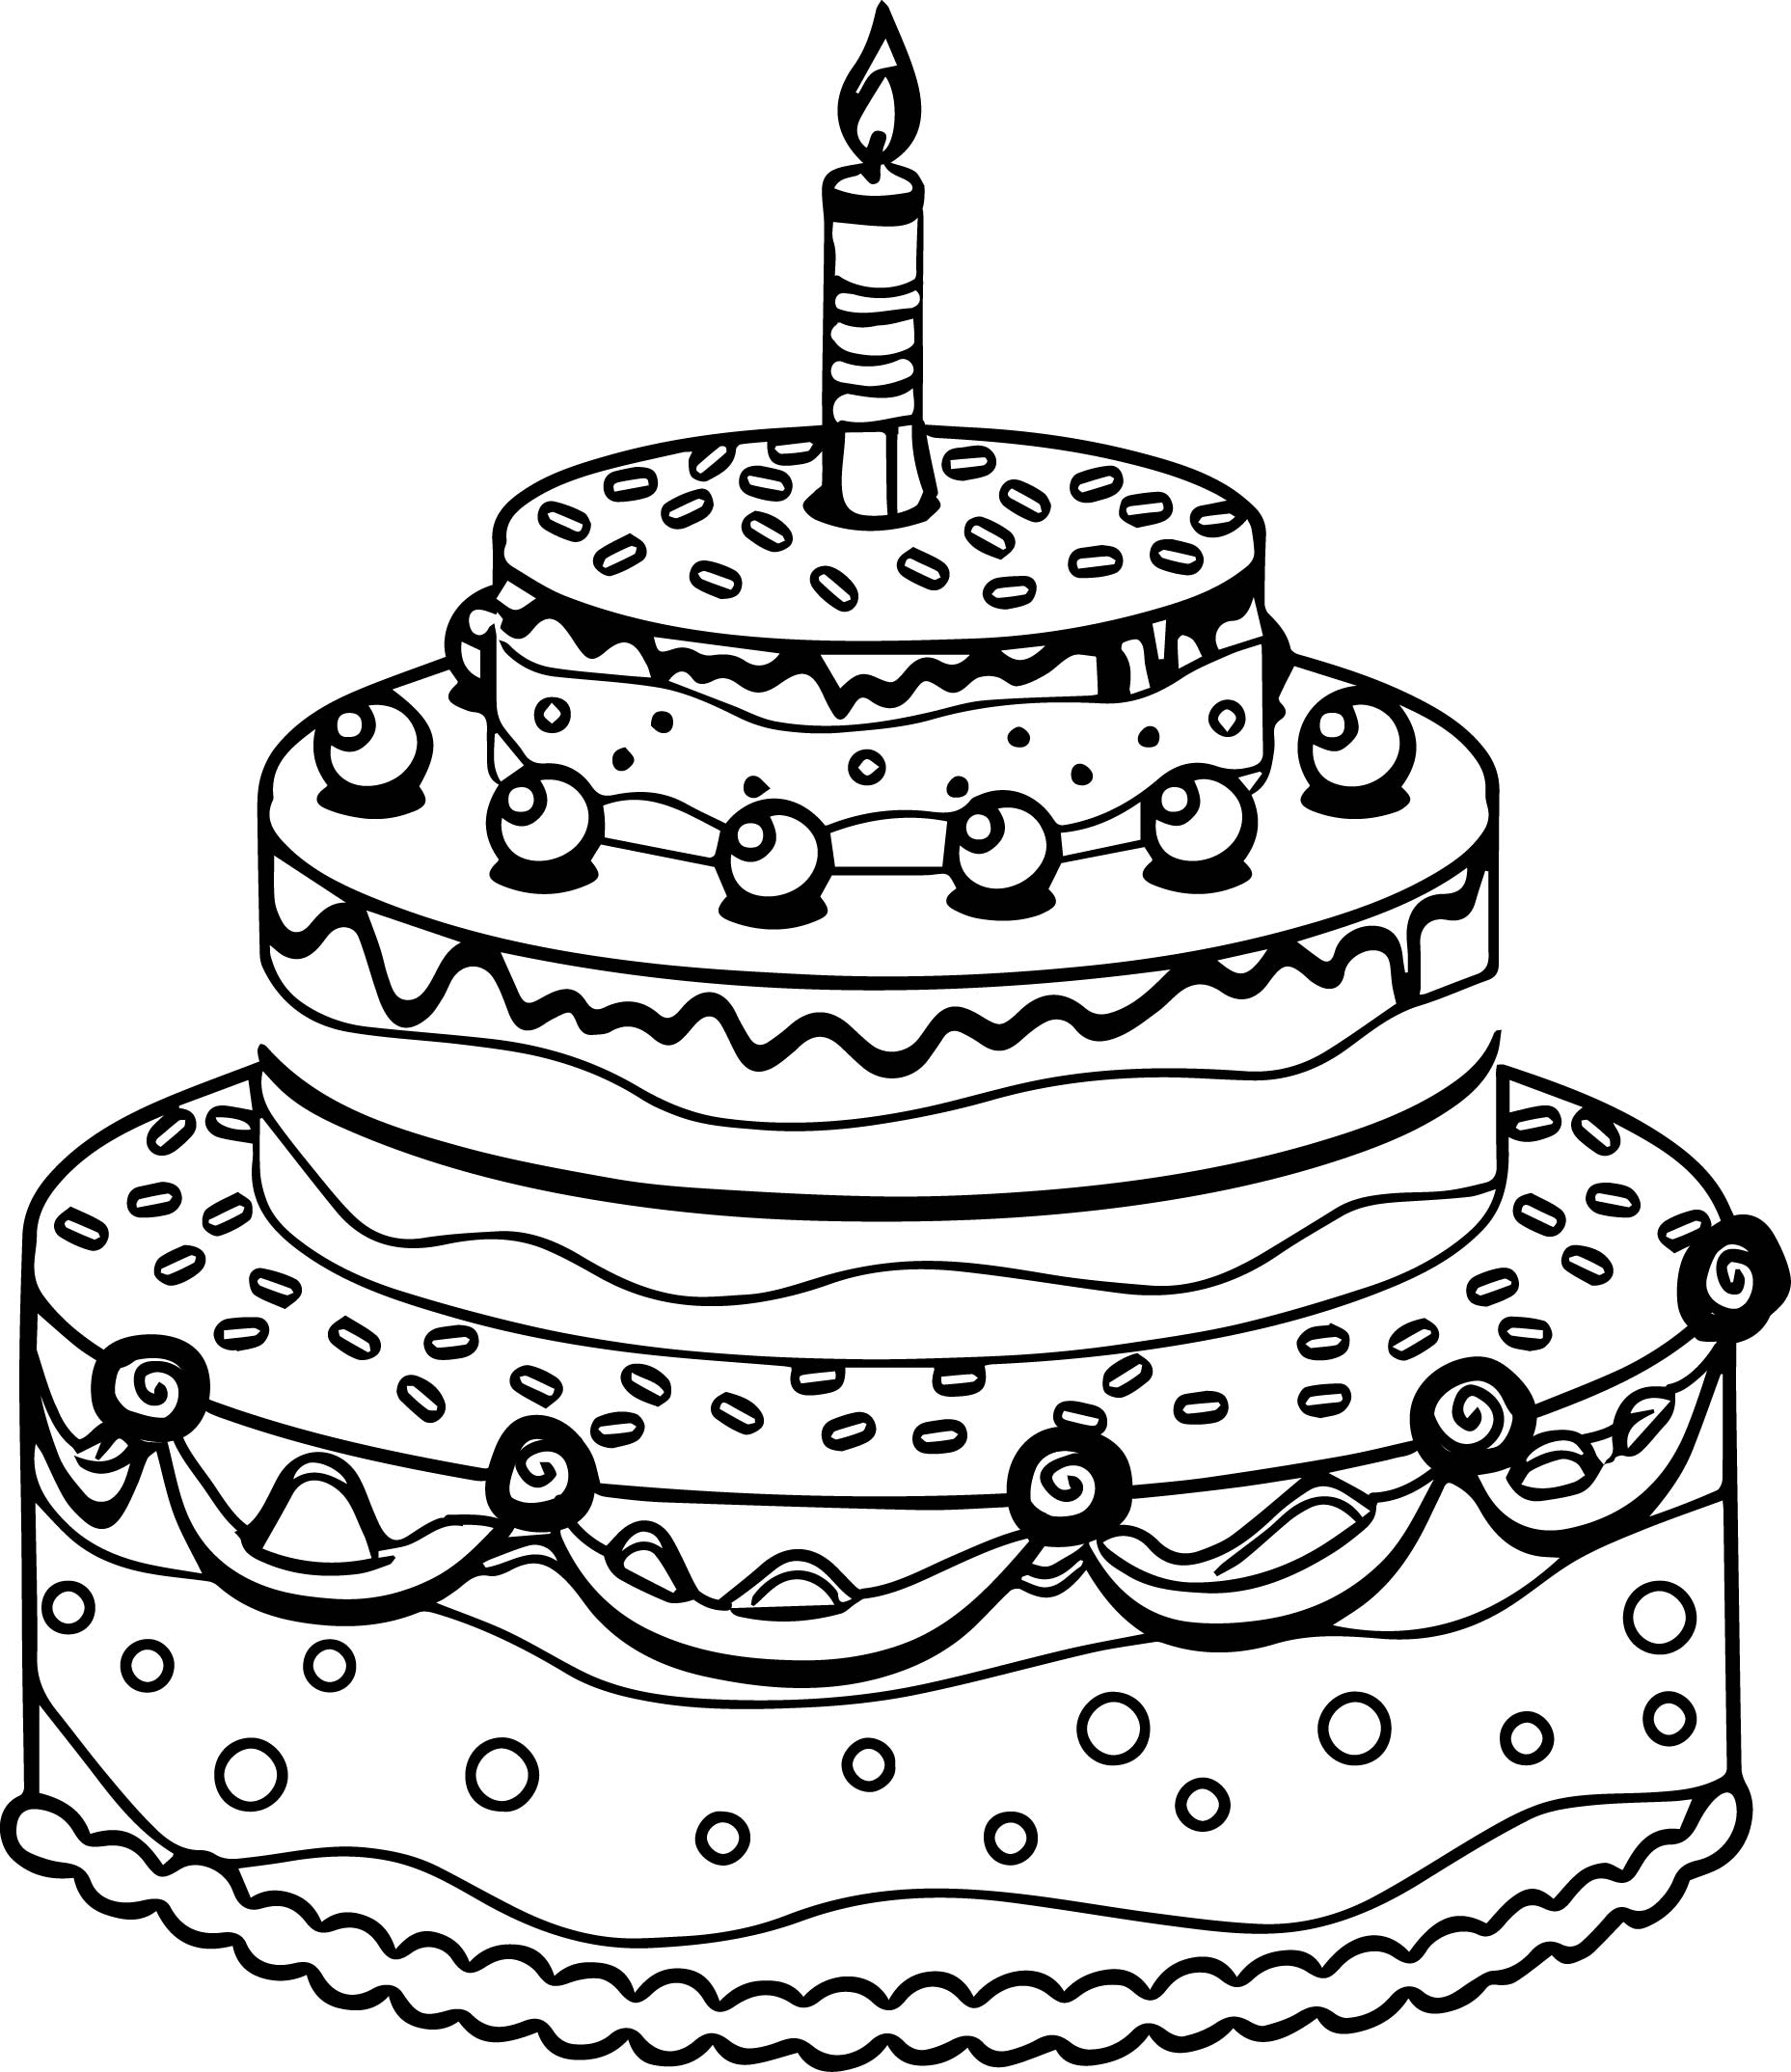 How To Draw A Cute Cartoon Birthday Cake